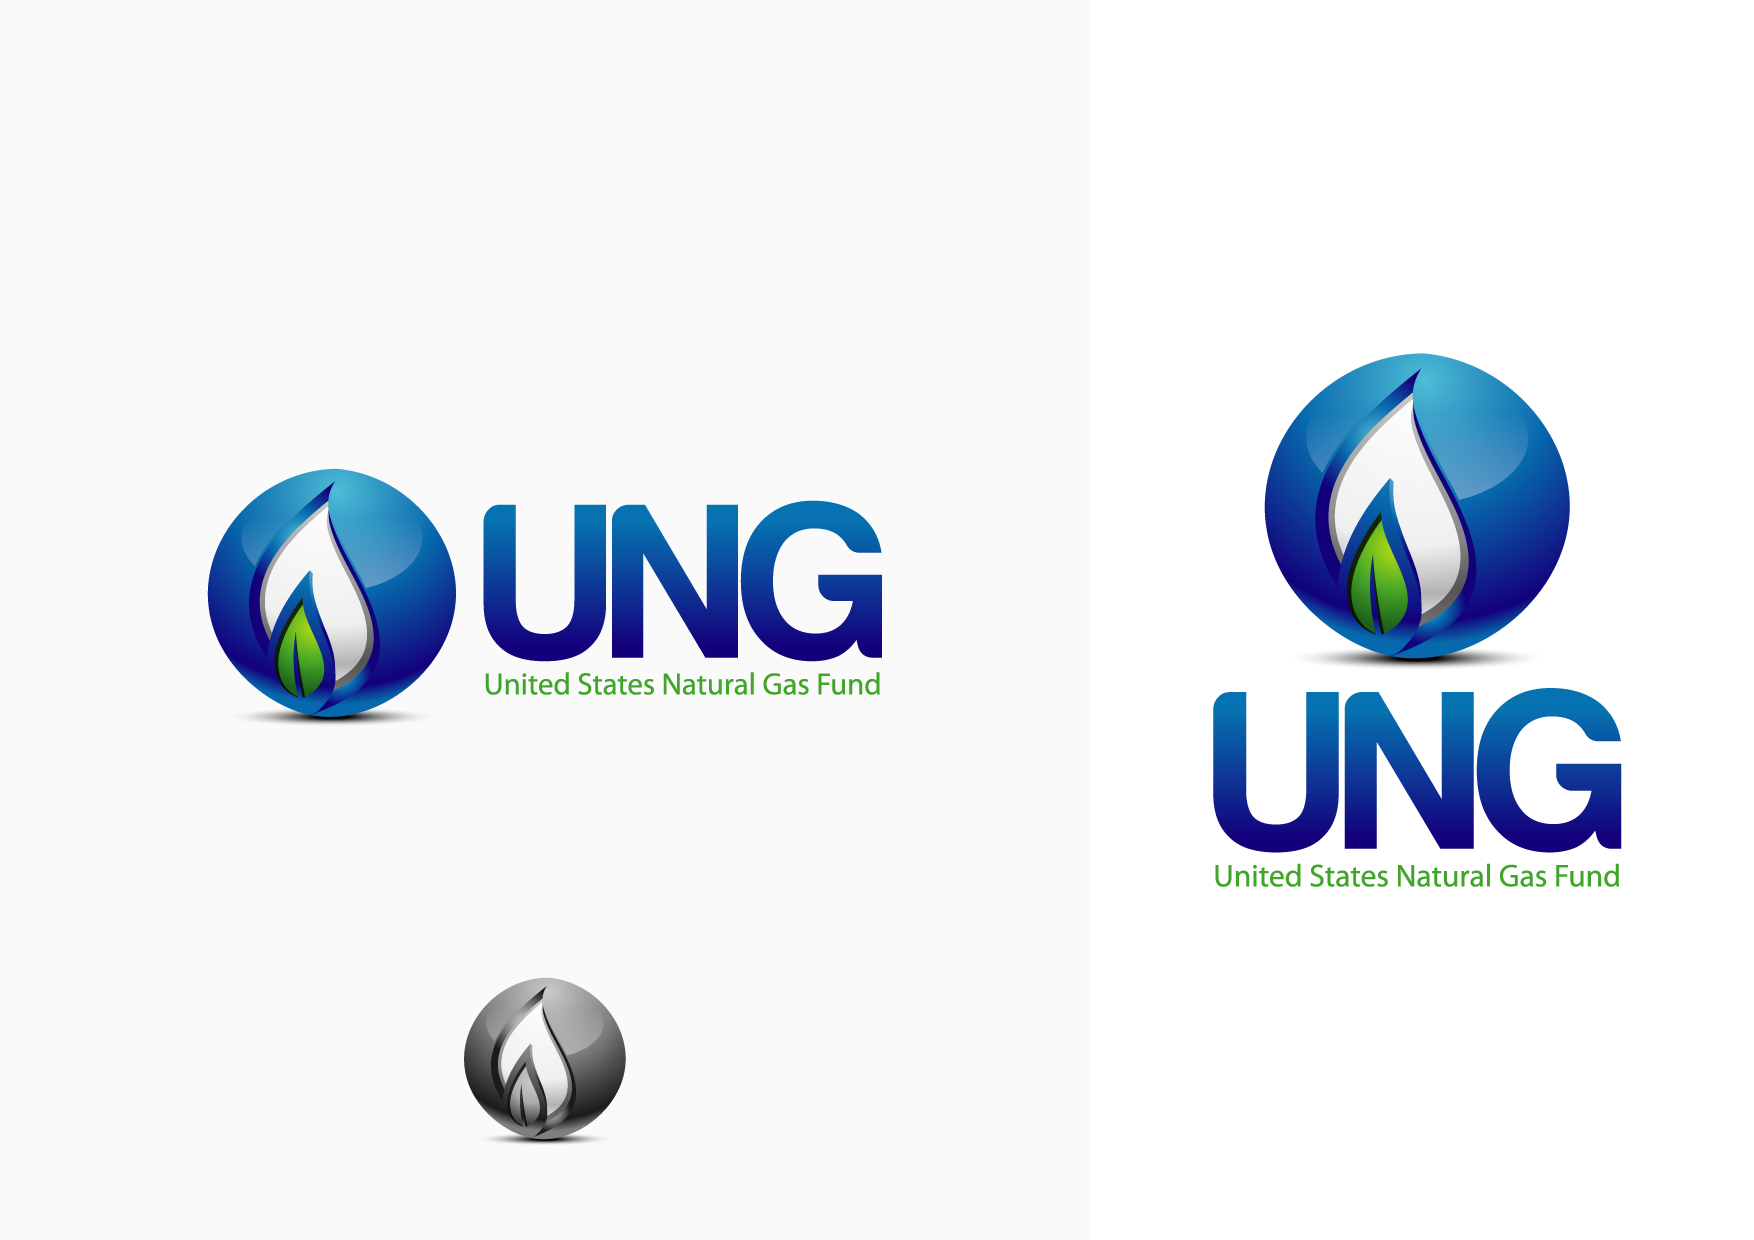 United States Natural Gas Fund needs a new logo